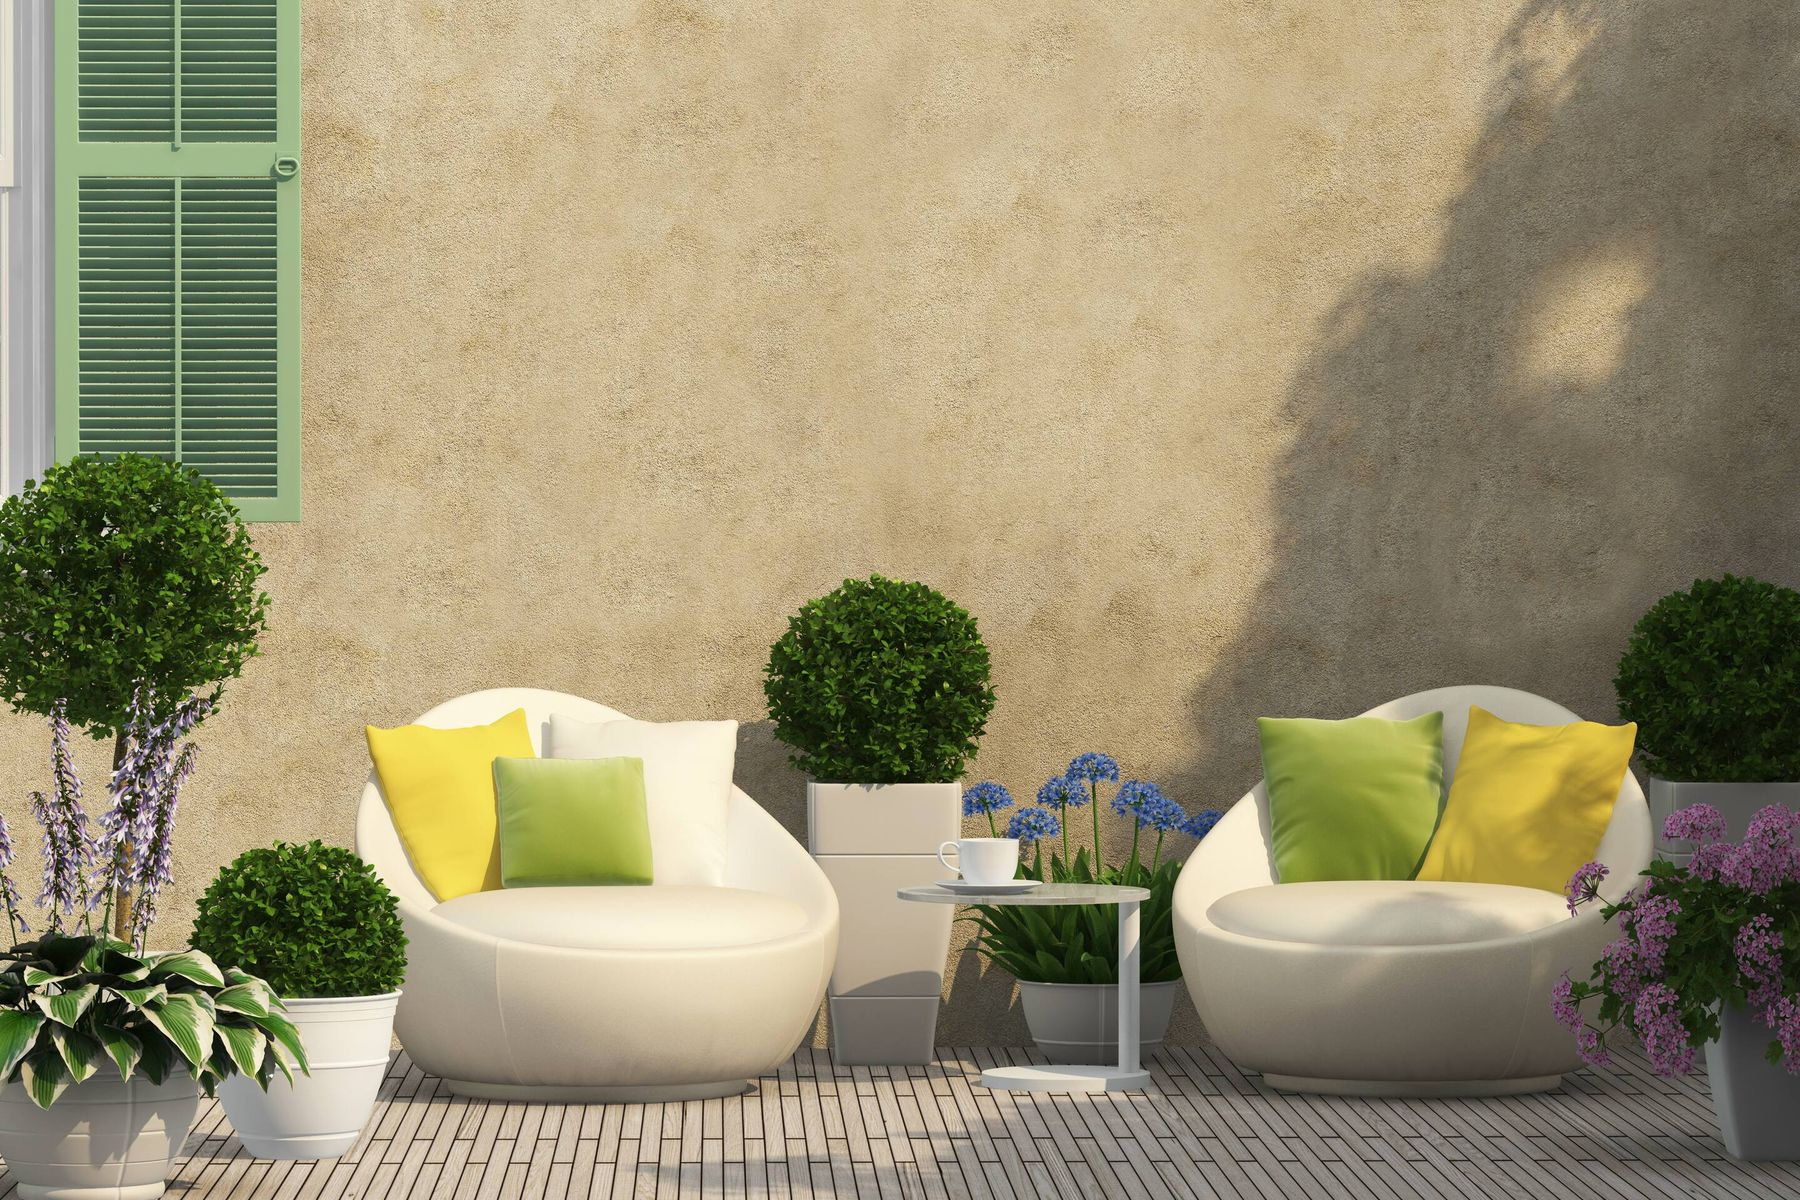 How to Care for Outdoor Furniture | Cleanipedia